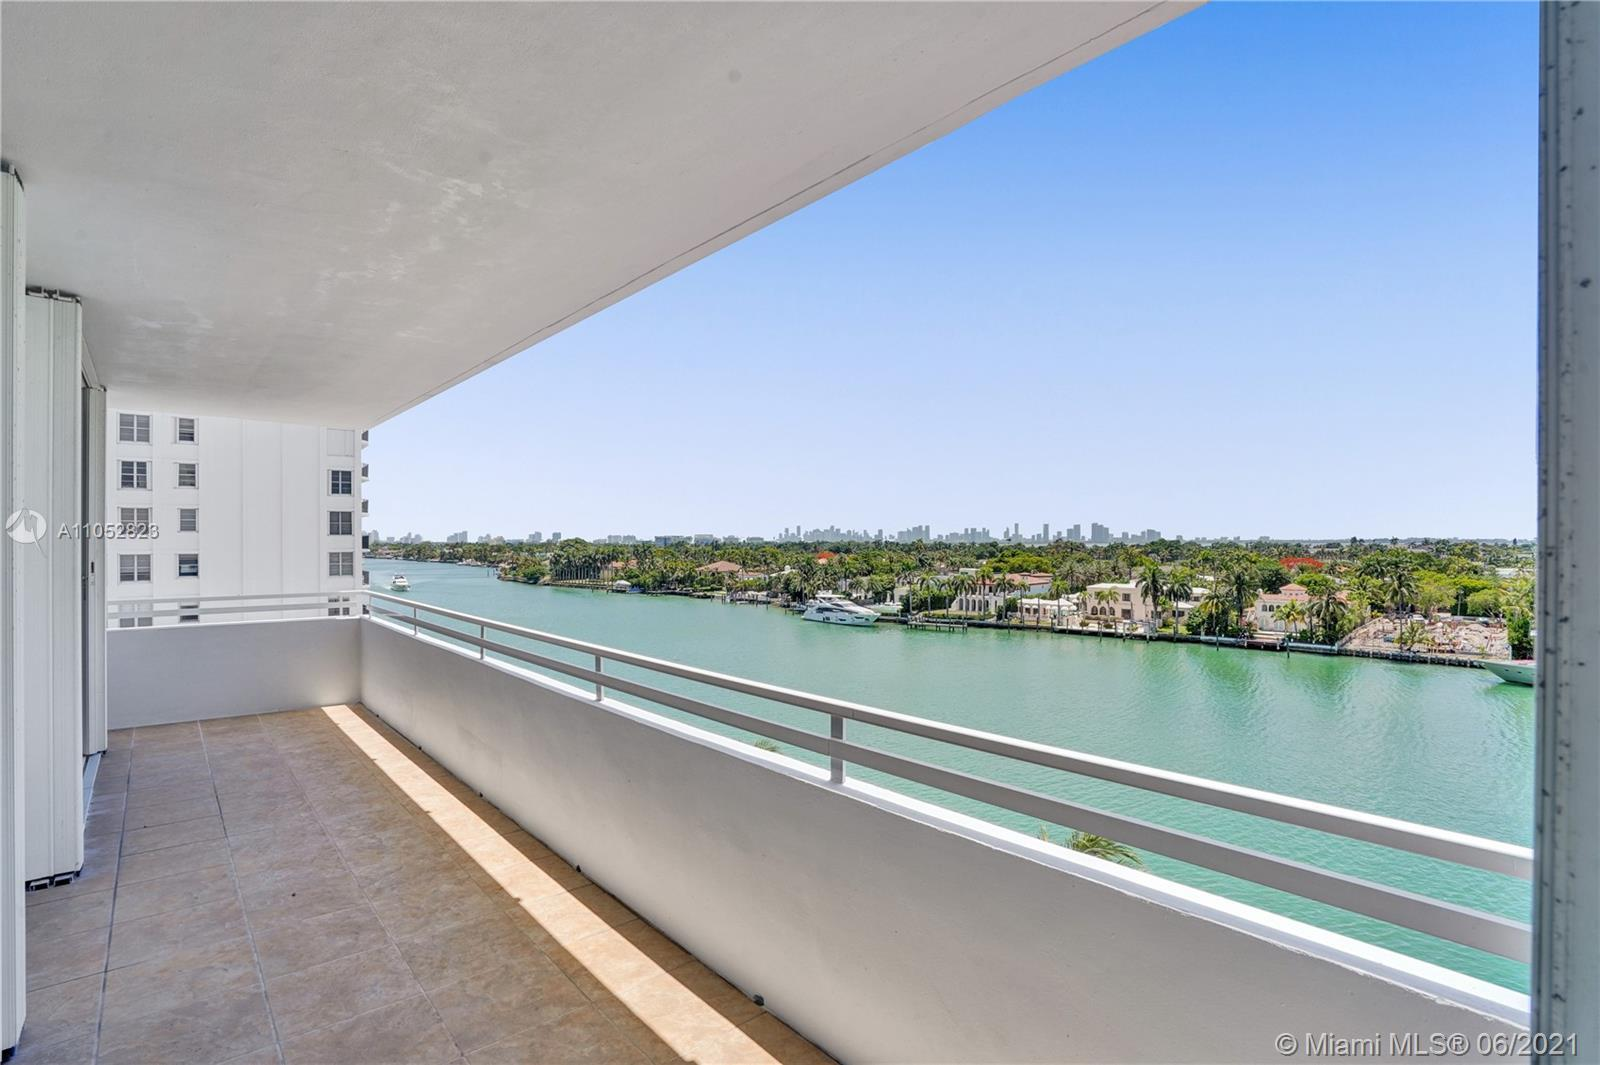 Stunning unobstructed intracoastal views from every room. This 2 bedroom, 2 bathroom, corner unit in